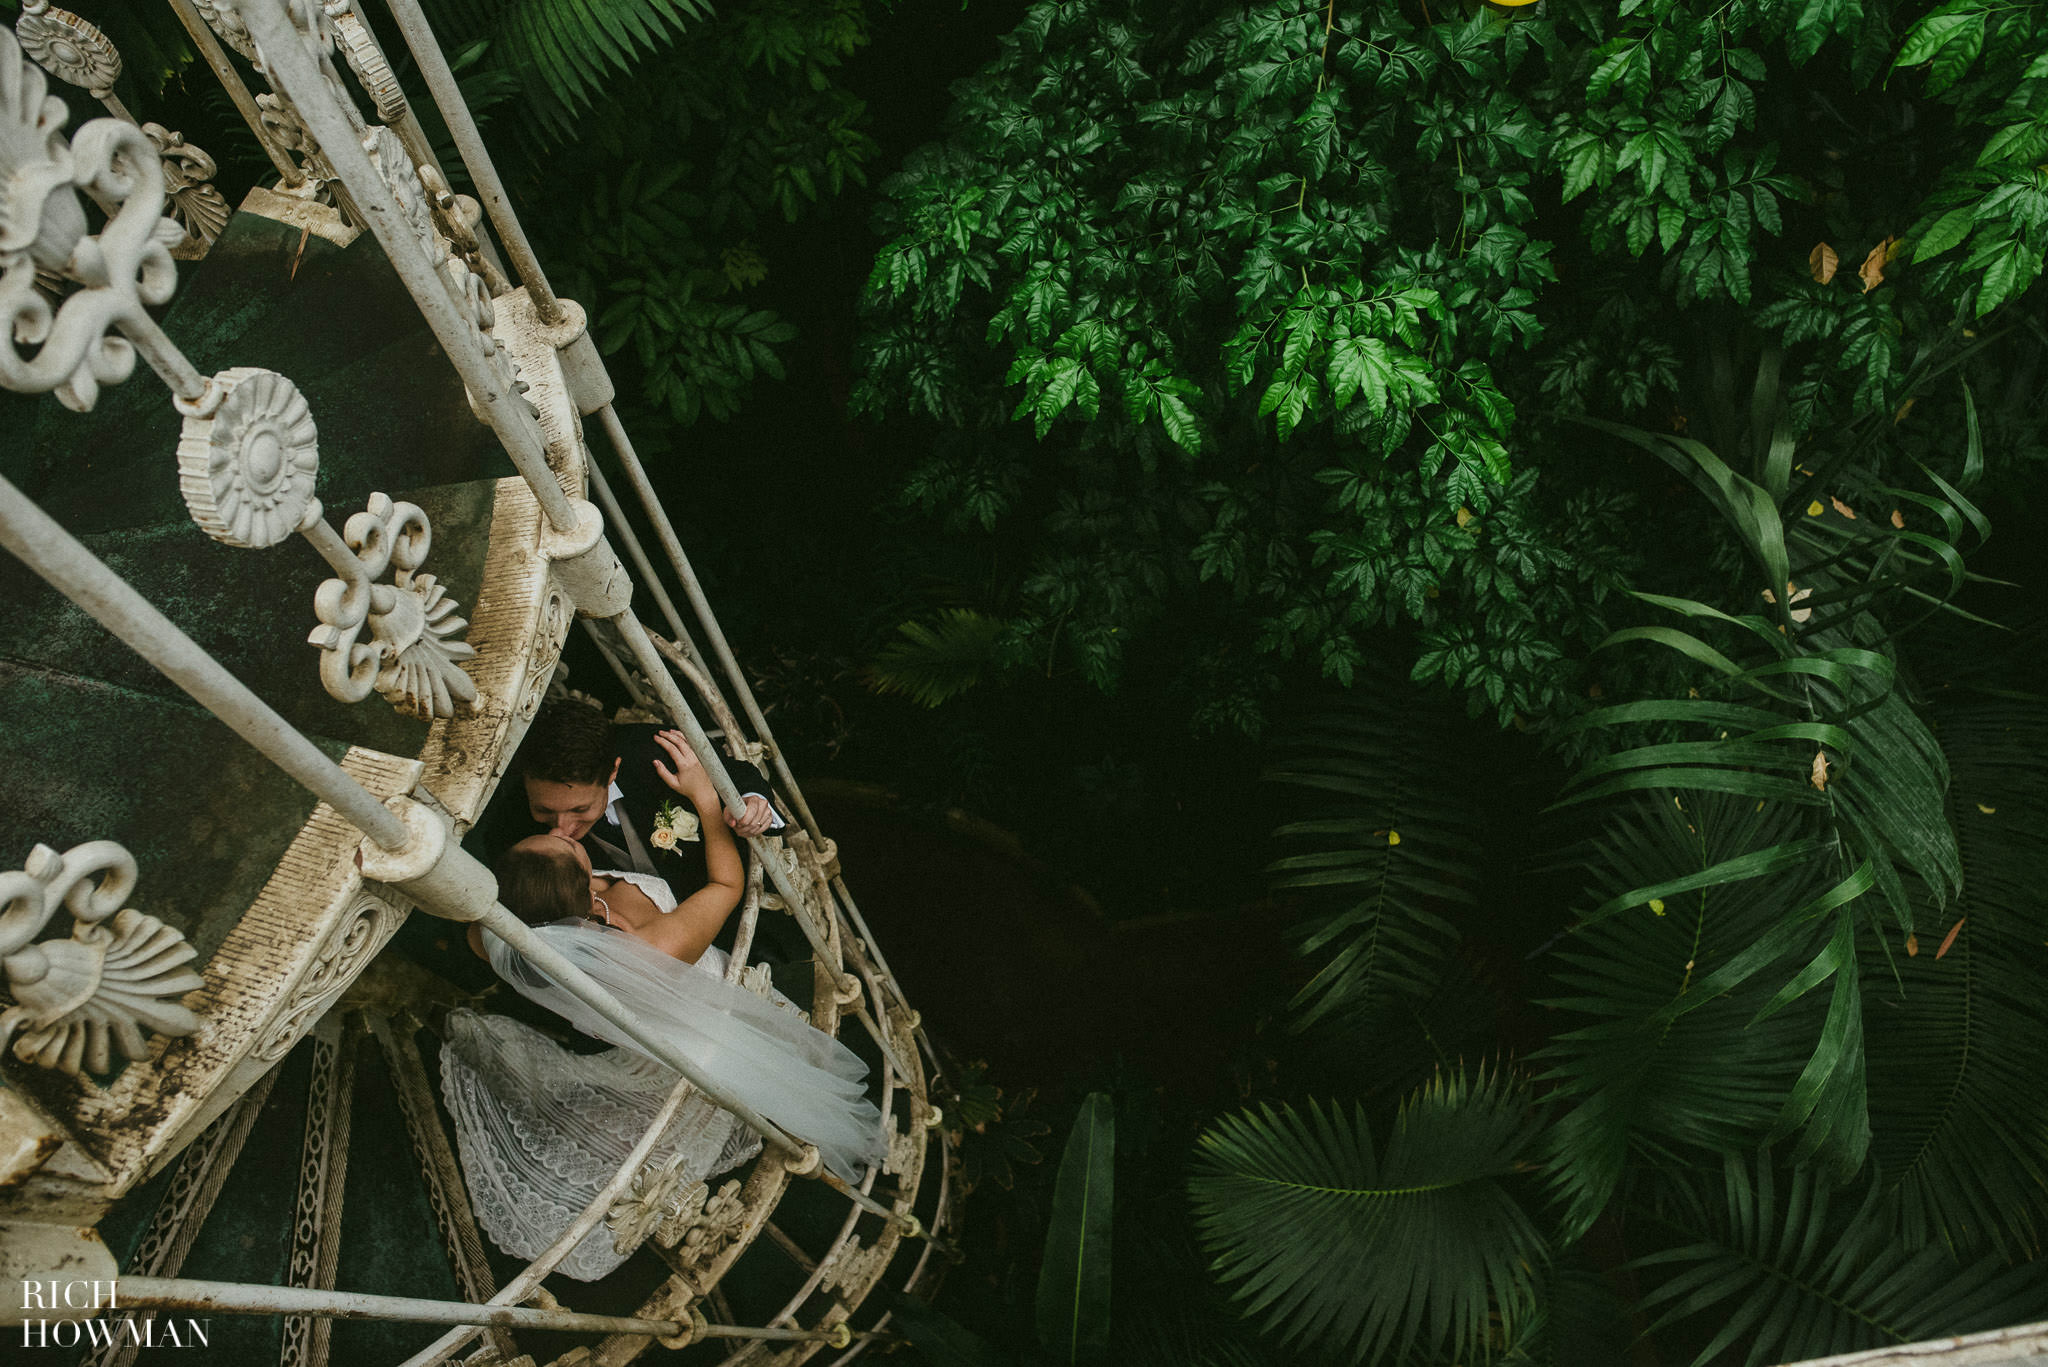 Looking down on the newlyweds standing on the spiral staircase at Kew Gardens